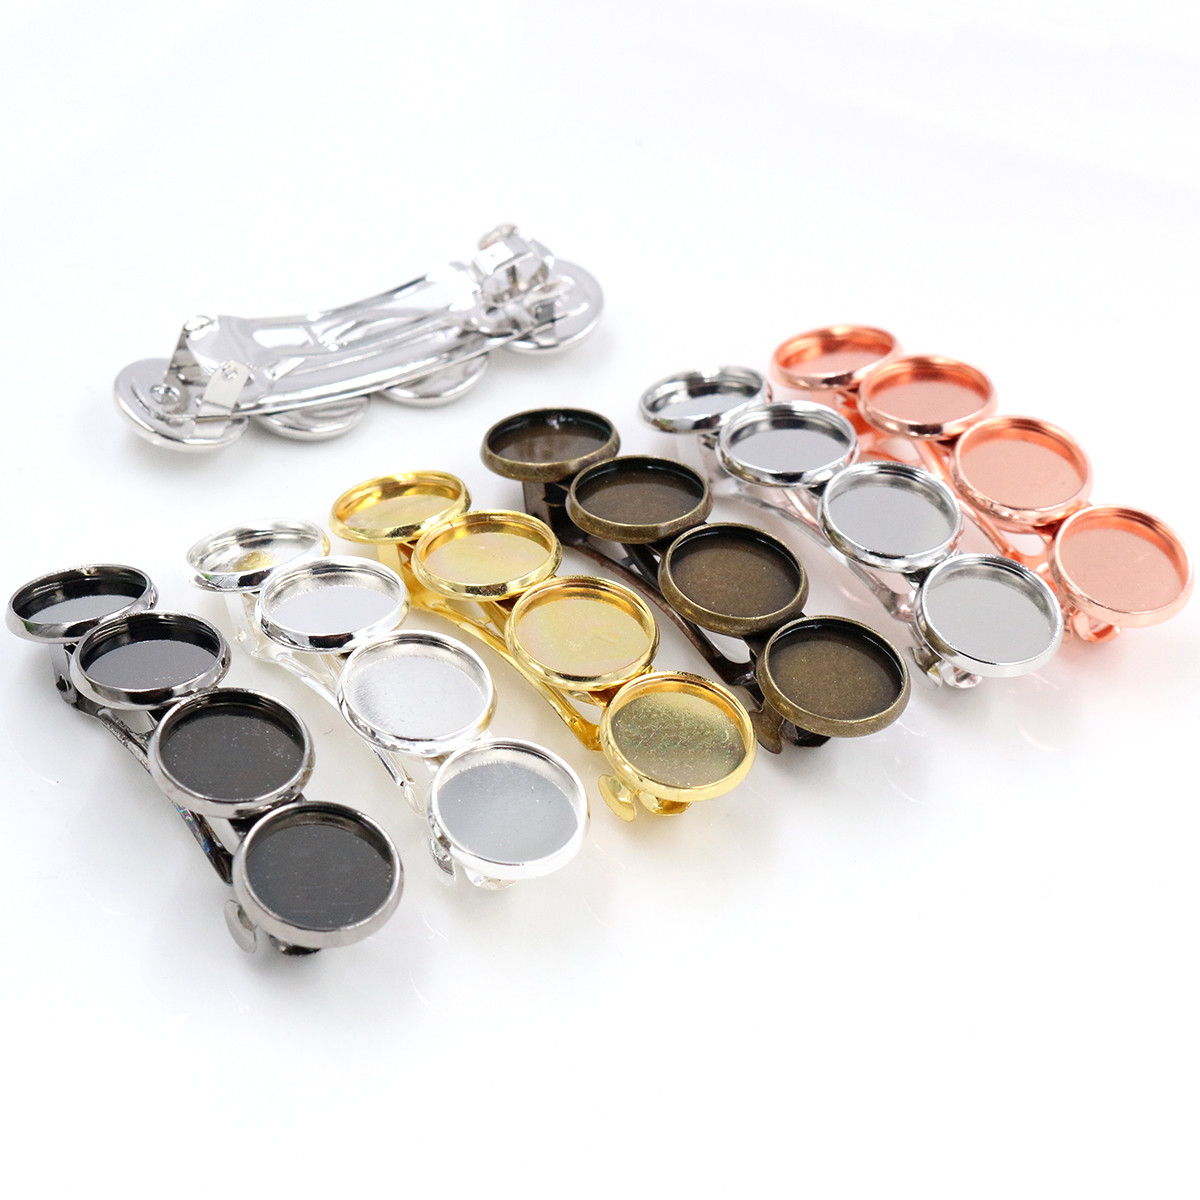 5pcs 12mm With 4 Cameo High Quality 6 Colors Plated Copper Material Hairpin Hair Clips Hairpin Base Setting